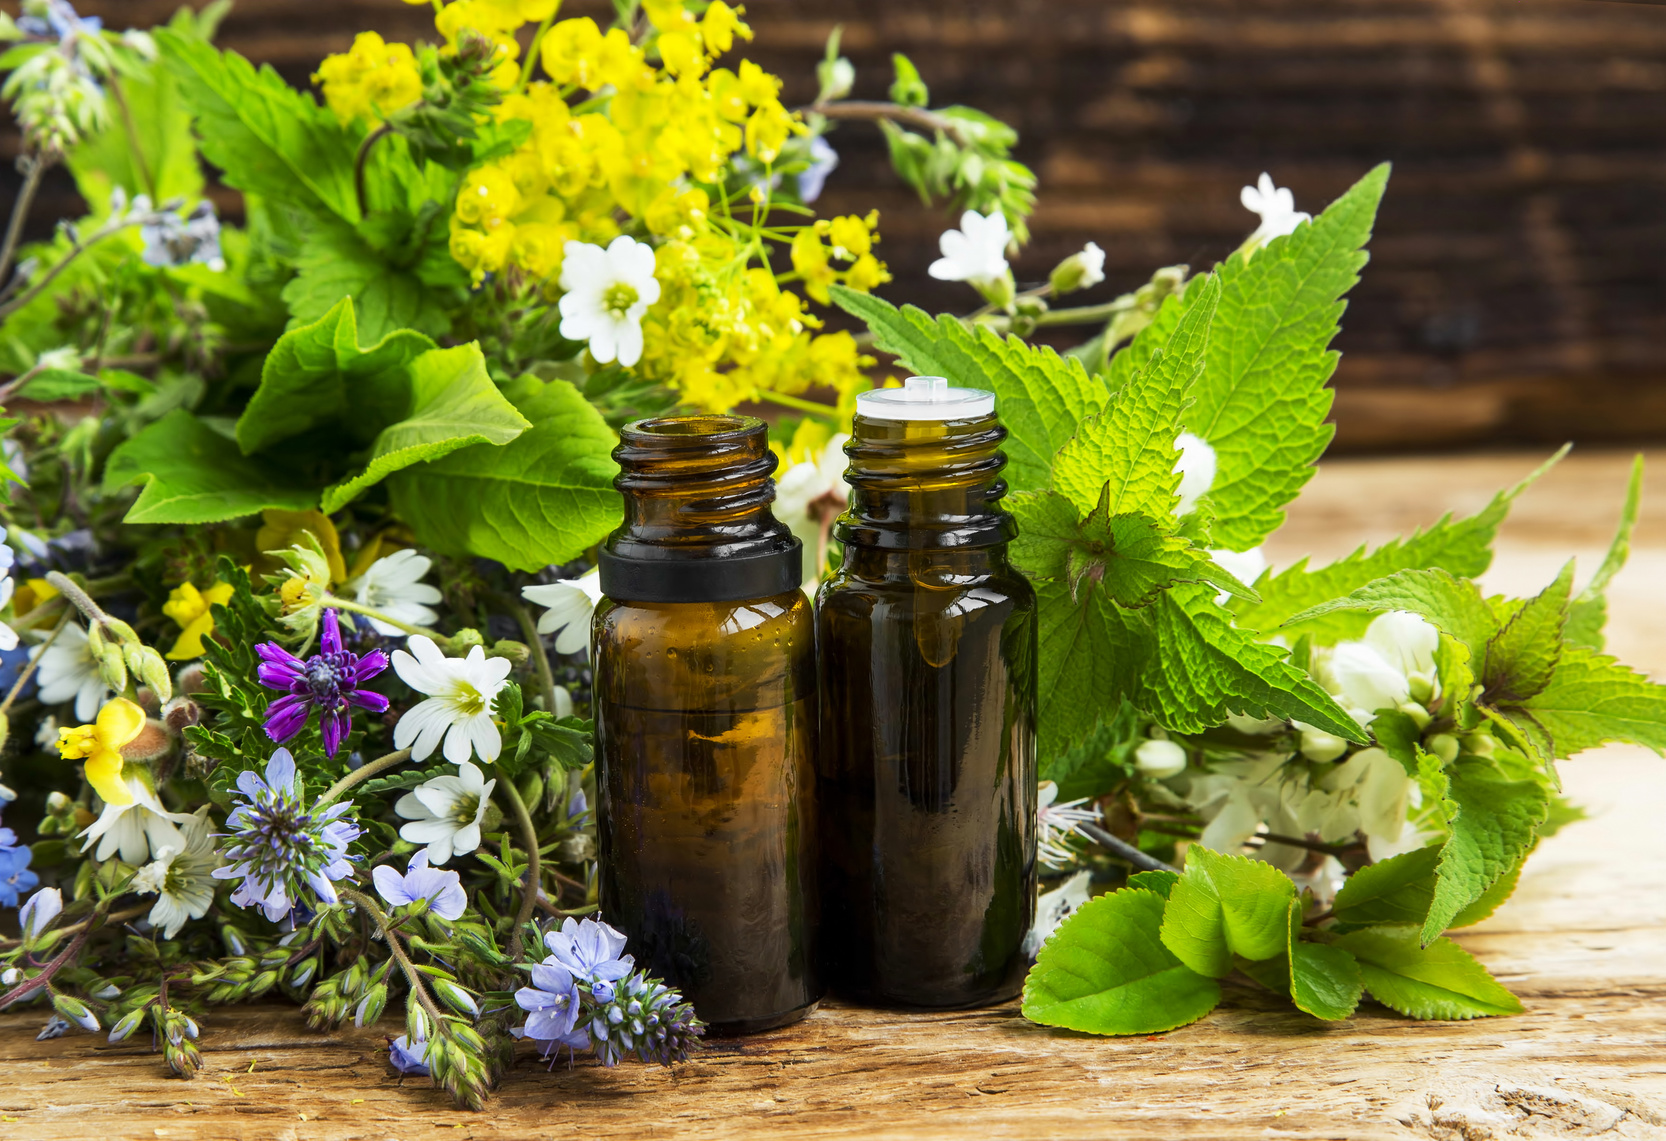 Alternative herbal medicine with medicinal plants essence bottles